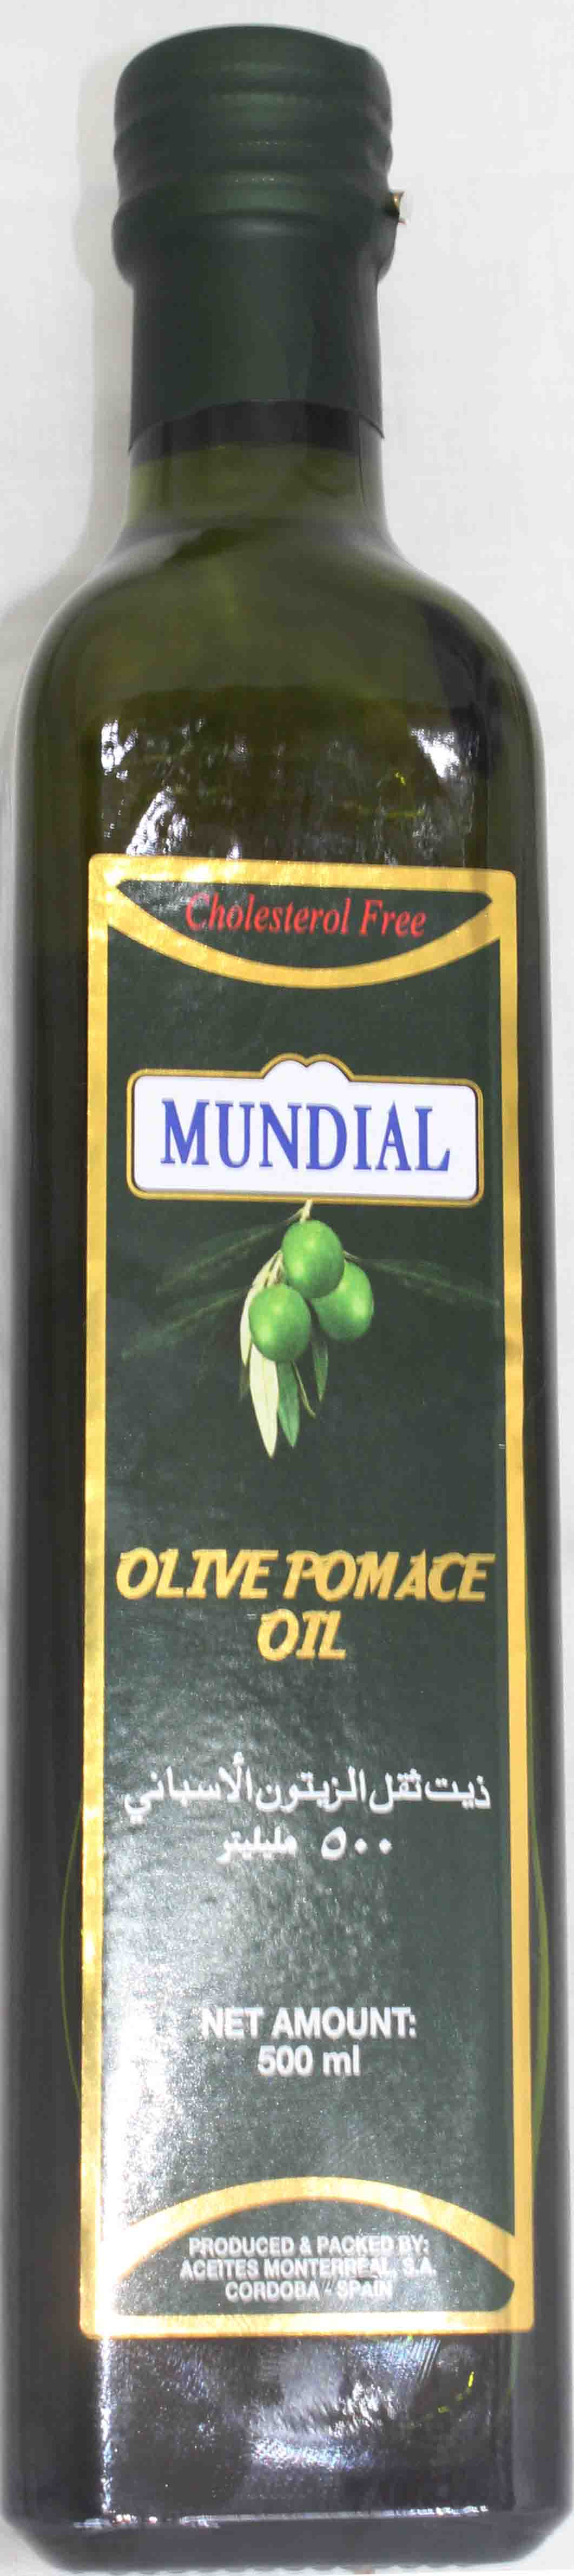 Mundial Extra Light Pomace Olive Oil Bottle 1ltr